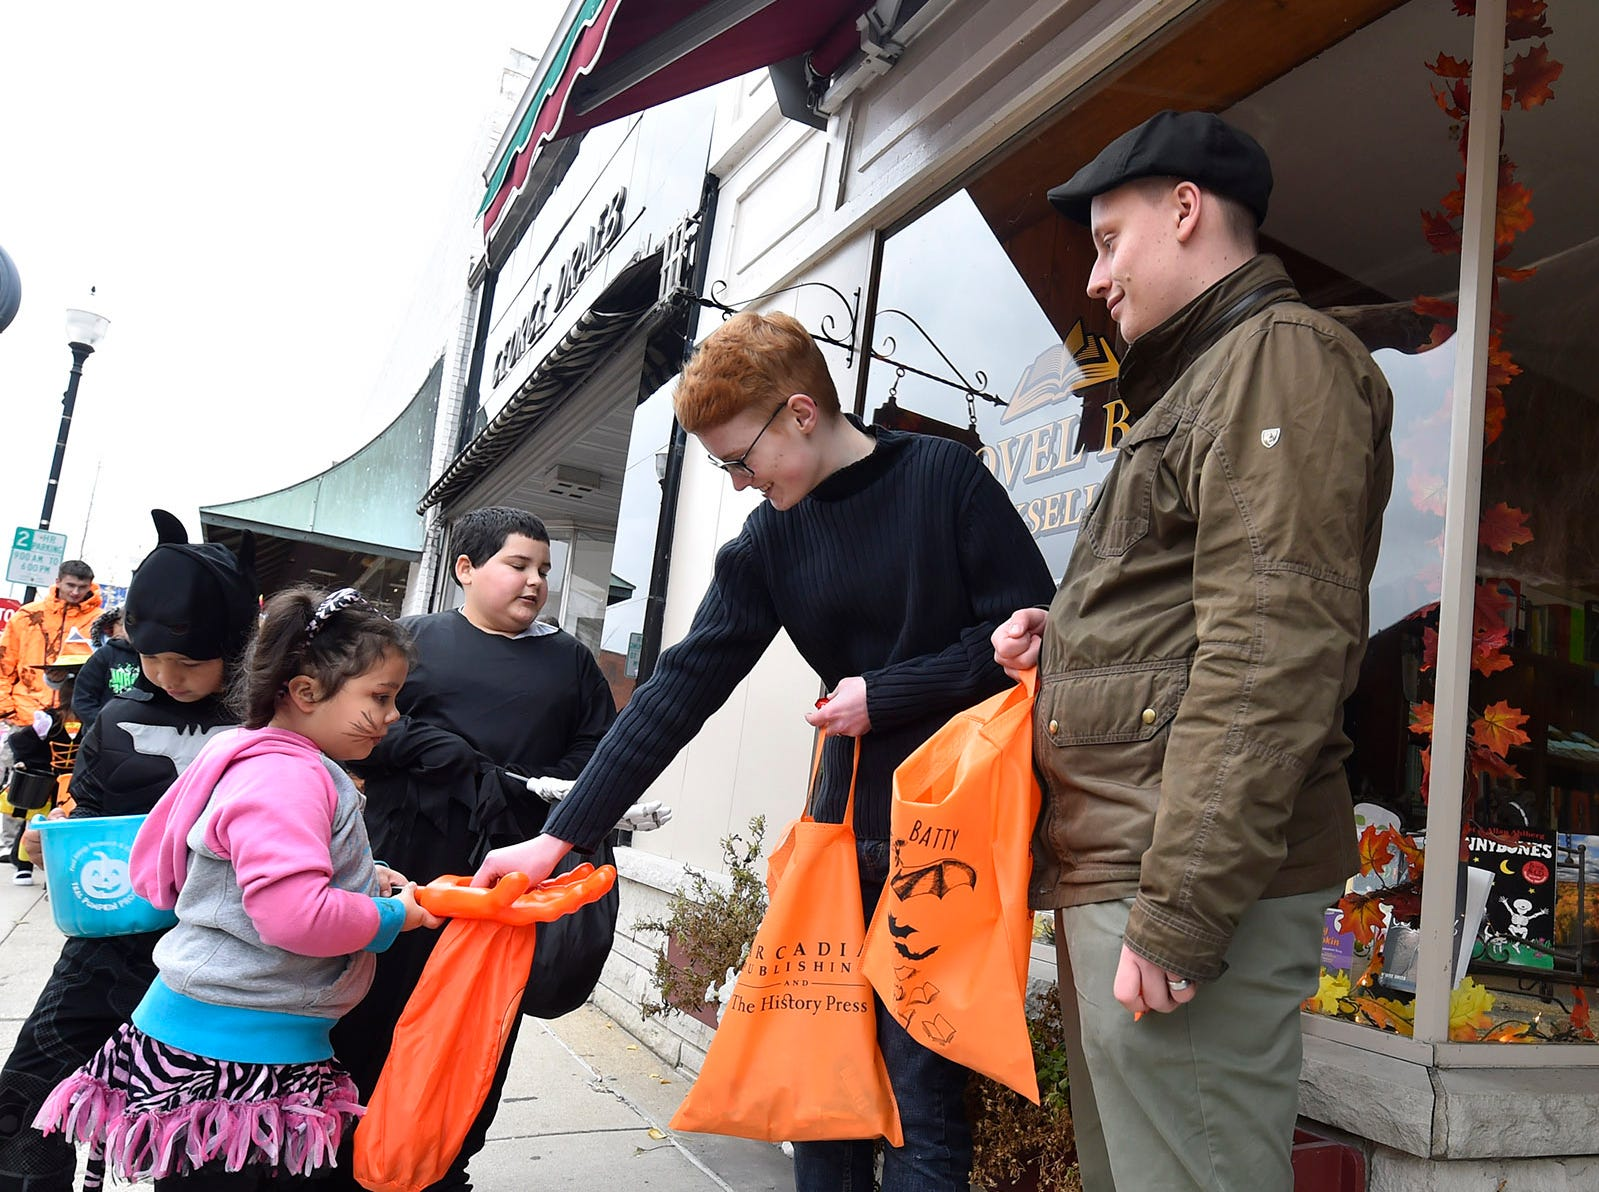 Vanessa Koopman and Mike Maggetti hand out candy at Novel Bay Booksellers following the Thrills on Third costume parade on Saturday, Oct. 27, 2018, in Sturgeon Bay. Tina M. Gohr/USA TODAY NETWORK-Wisconsin